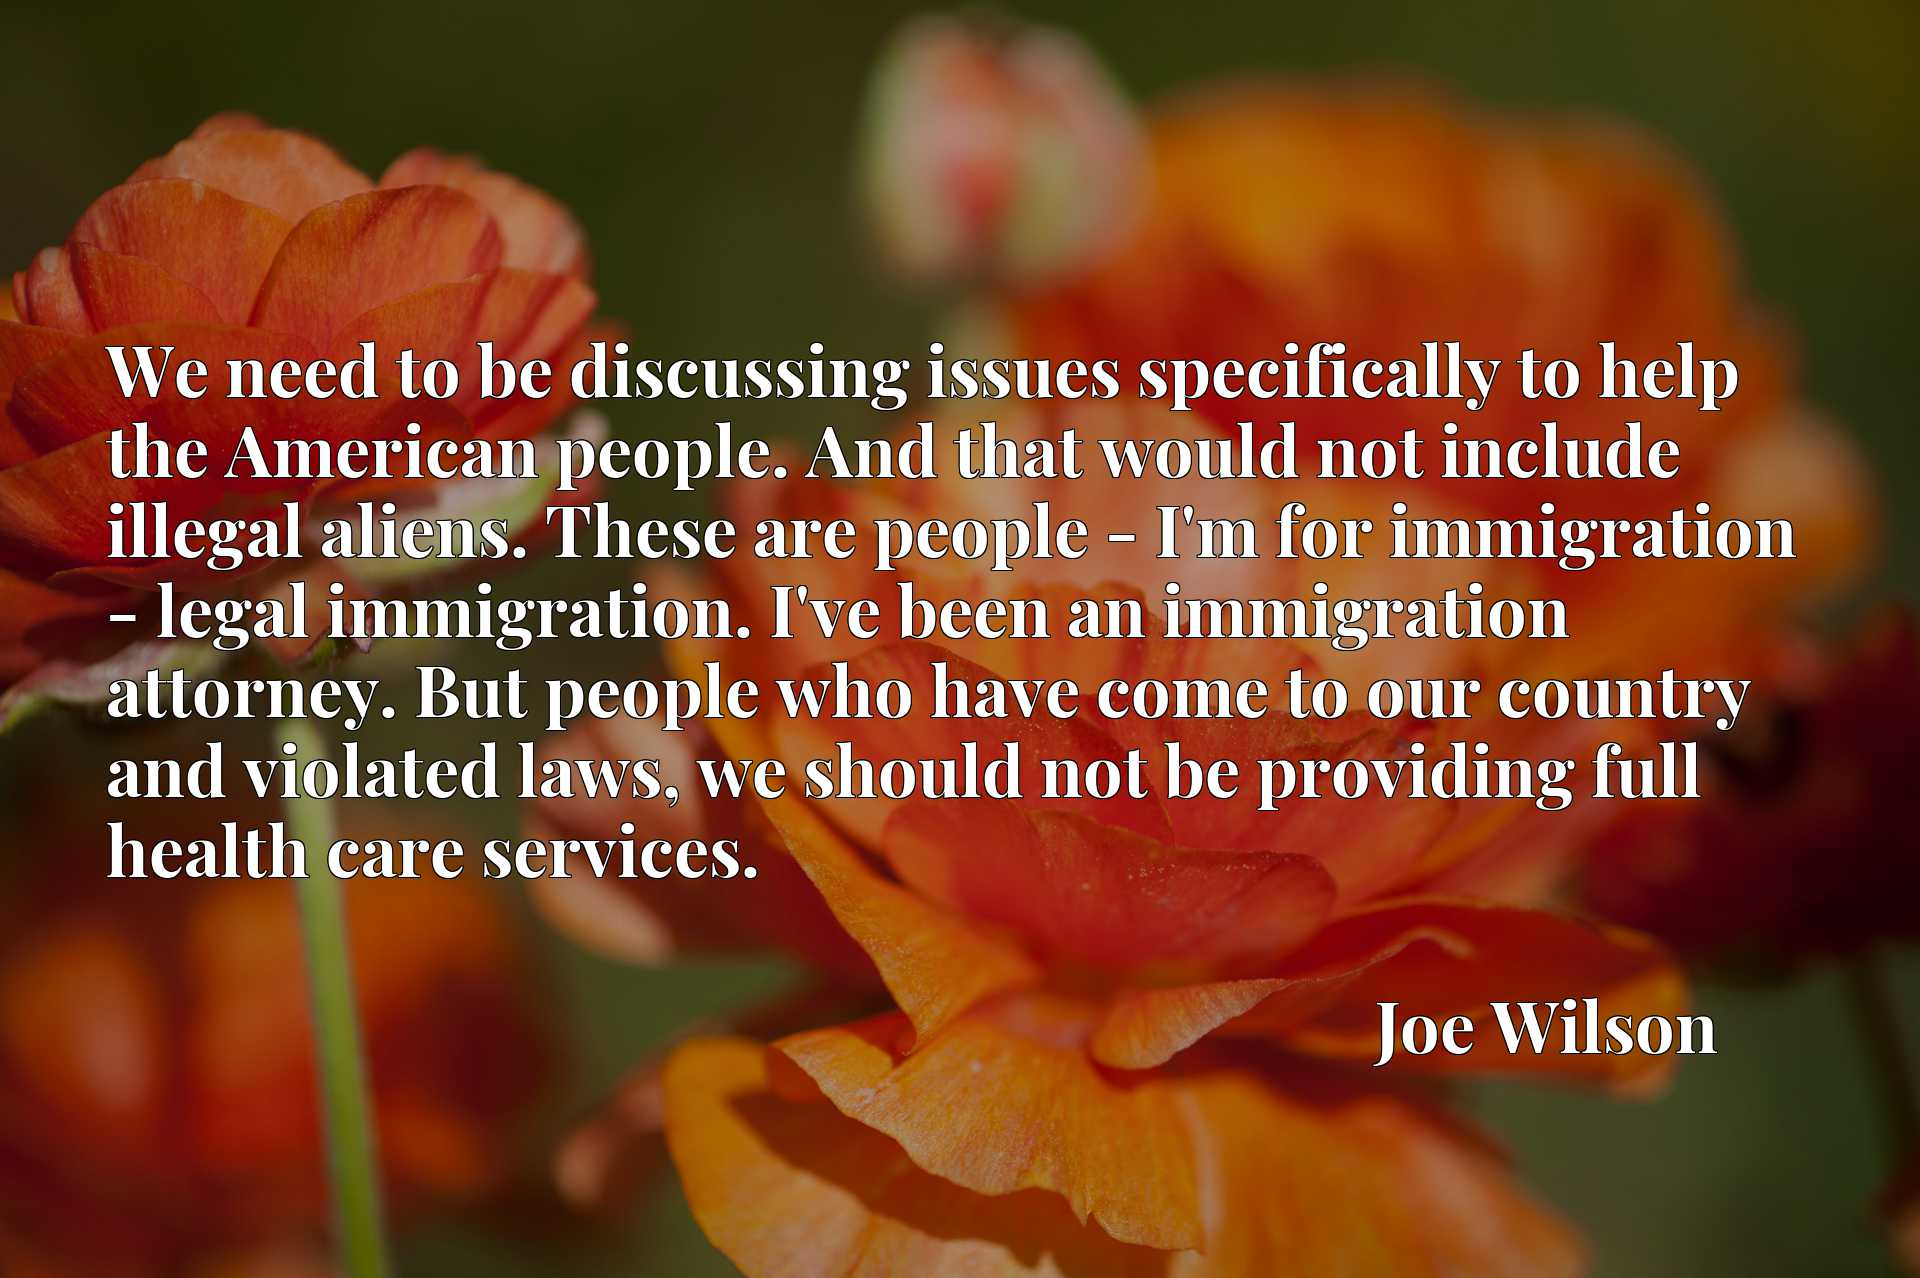 We need to be discussing issues specifically to help the American people. And that would not include illegal aliens. These are people - I'm for immigration - legal immigration. I've been an immigration attorney. But people who have come to our country and violated laws, we should not be providing full health care services.